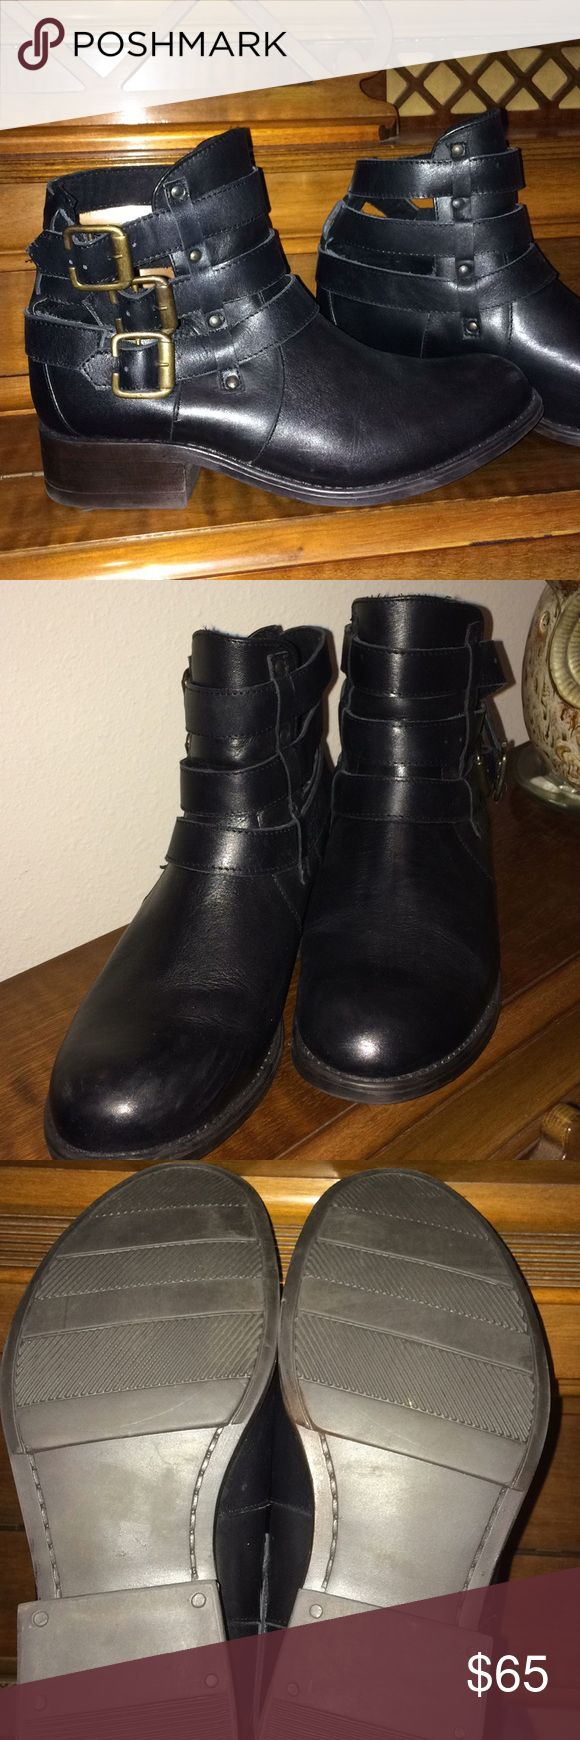 Ladies Gabriella Richard Manila 1 Black Leather NWOT, never worn. Black leather ankle boots. Gabriella Rocha Shoes Ankle Boots & Booties